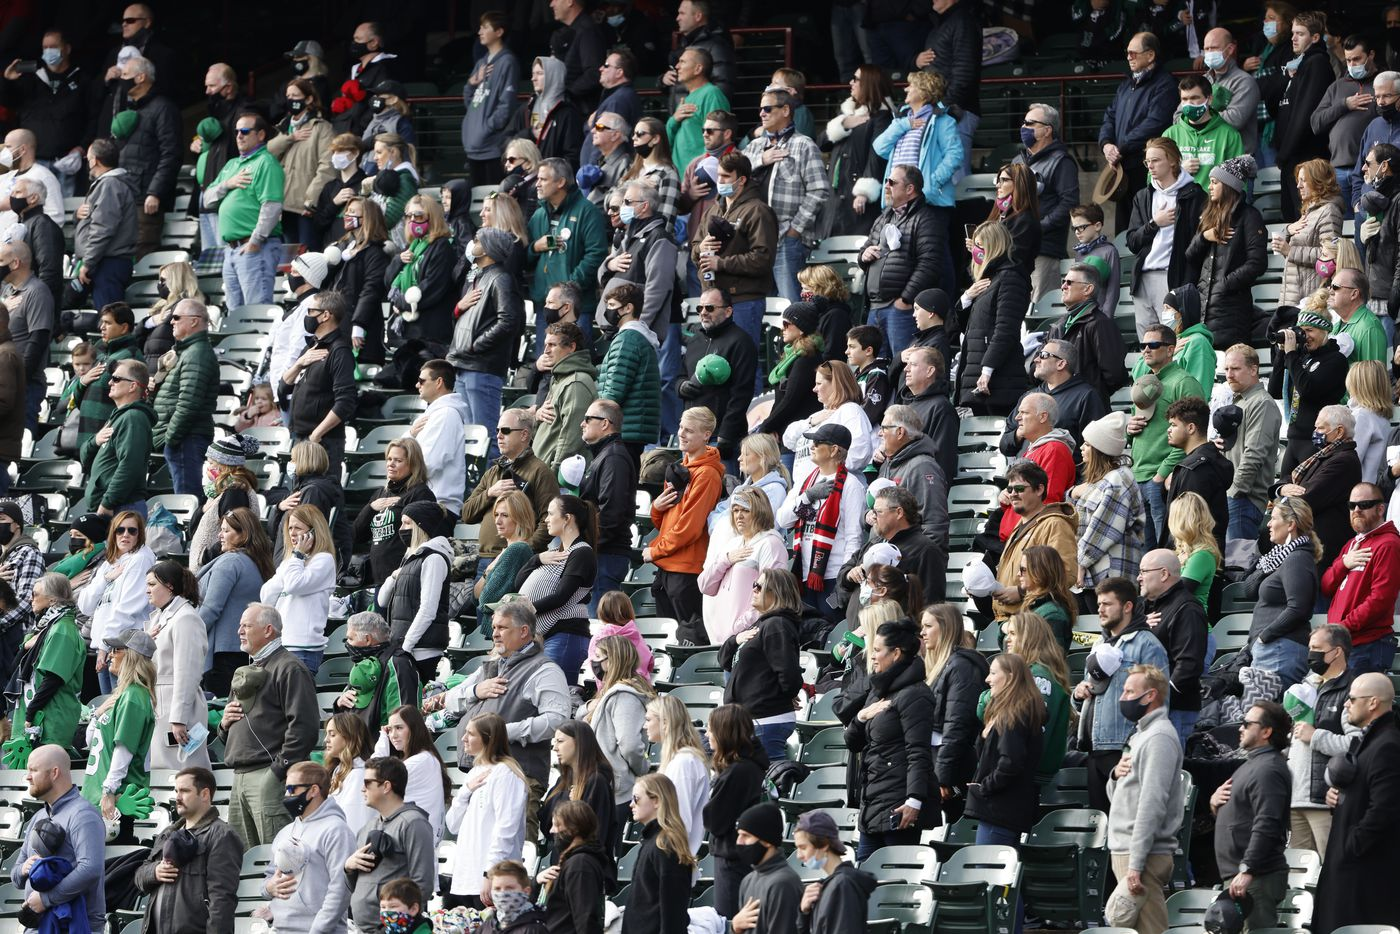 Southlake fans watched their team play during the Class 6A Division I Region I high school football final, in Arlington, Texas, on Jan. 2, 2020. (Michael Ainsworth/Special Contributor)